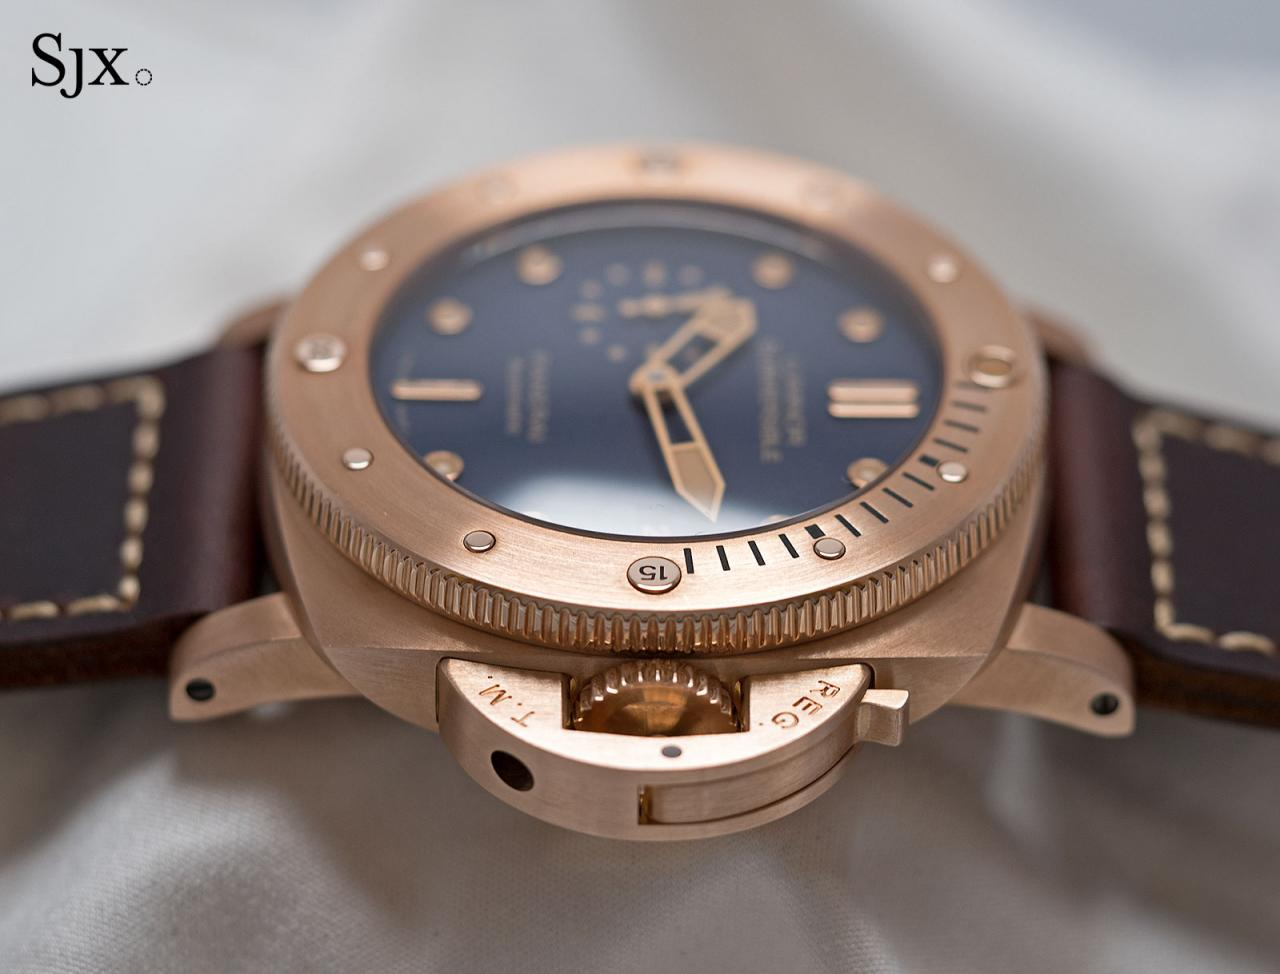 Panerai Luminor Submersible 1950 Bronzo PAM671-2